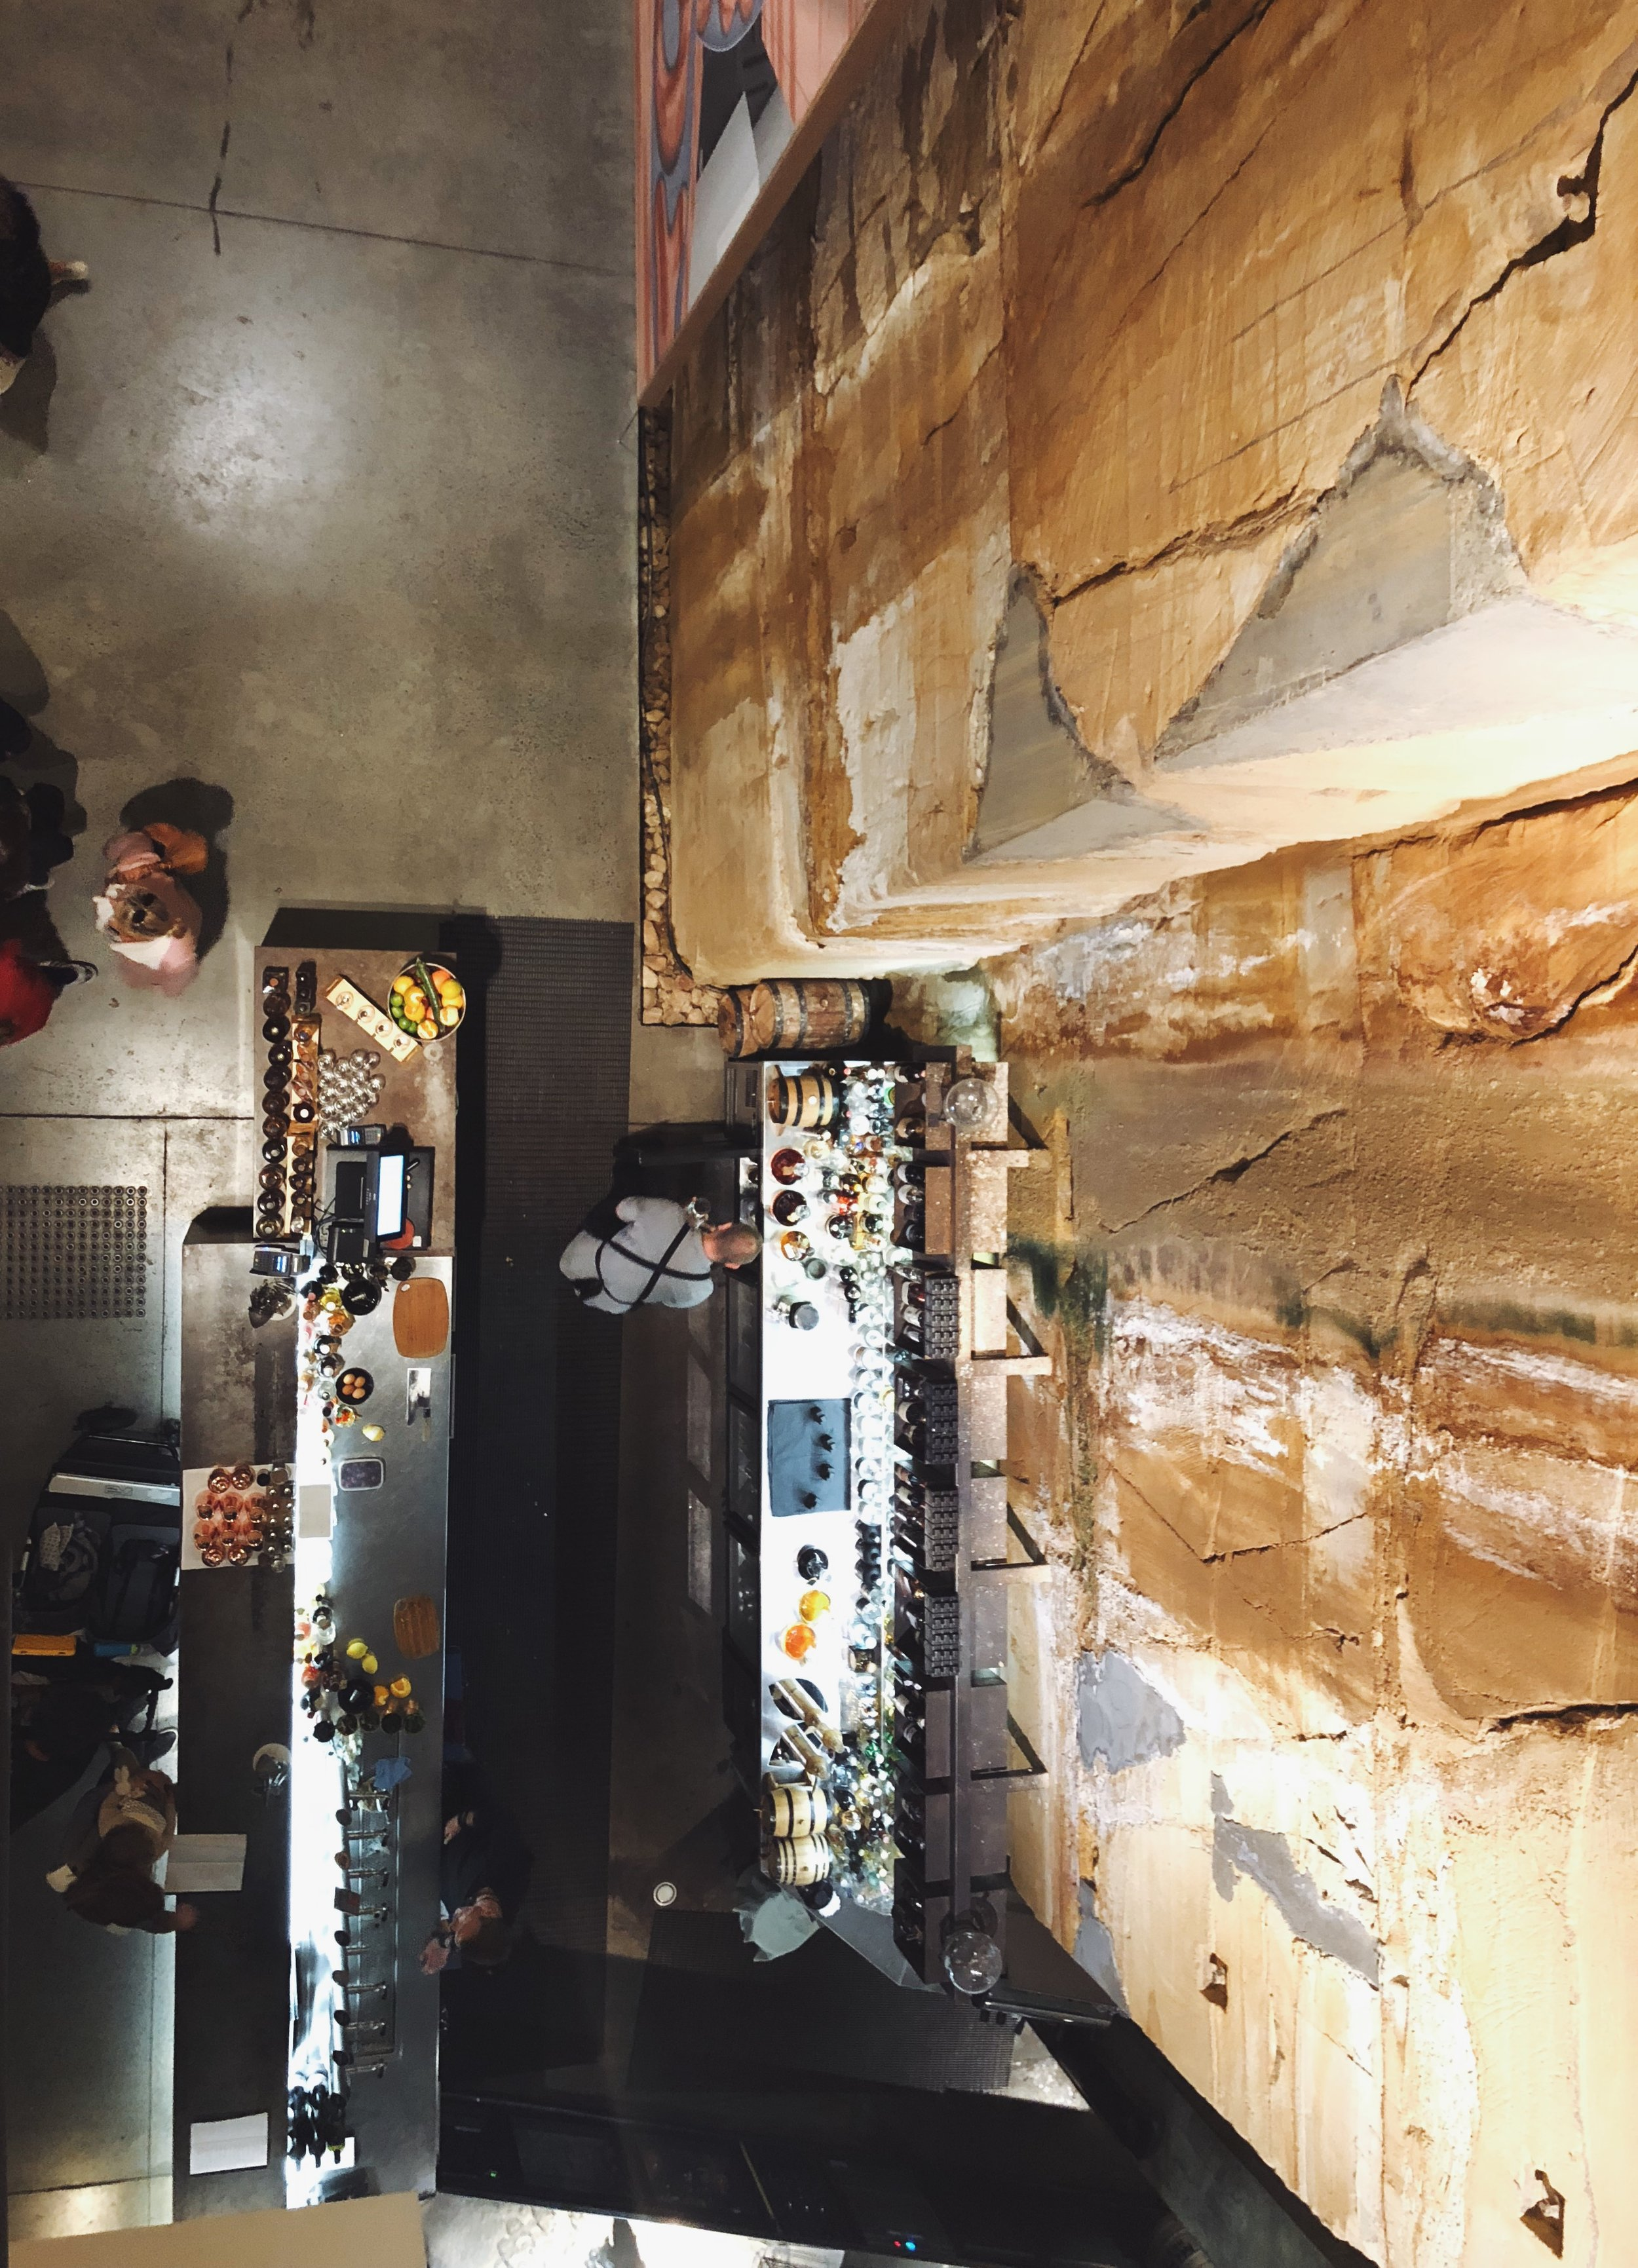 - After we purchased our tickets, we descended down a spiral staircase about 3 floors underground. The walls are covered with a rocky façade which serves as a constant reminder that you're underground.